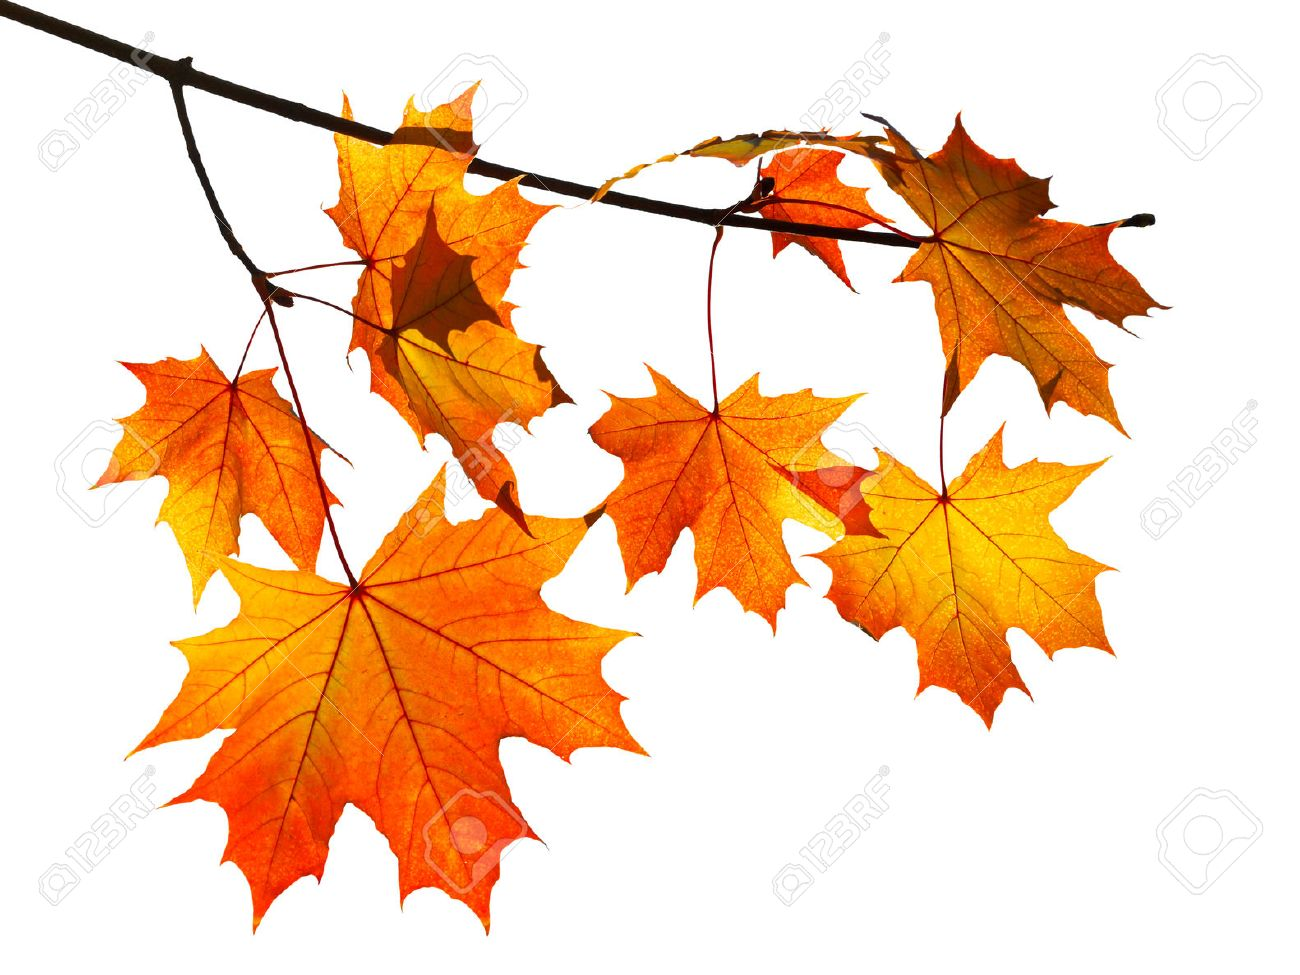 branch with yellow and orange autumn maple leaves isolated on white background - 33528381